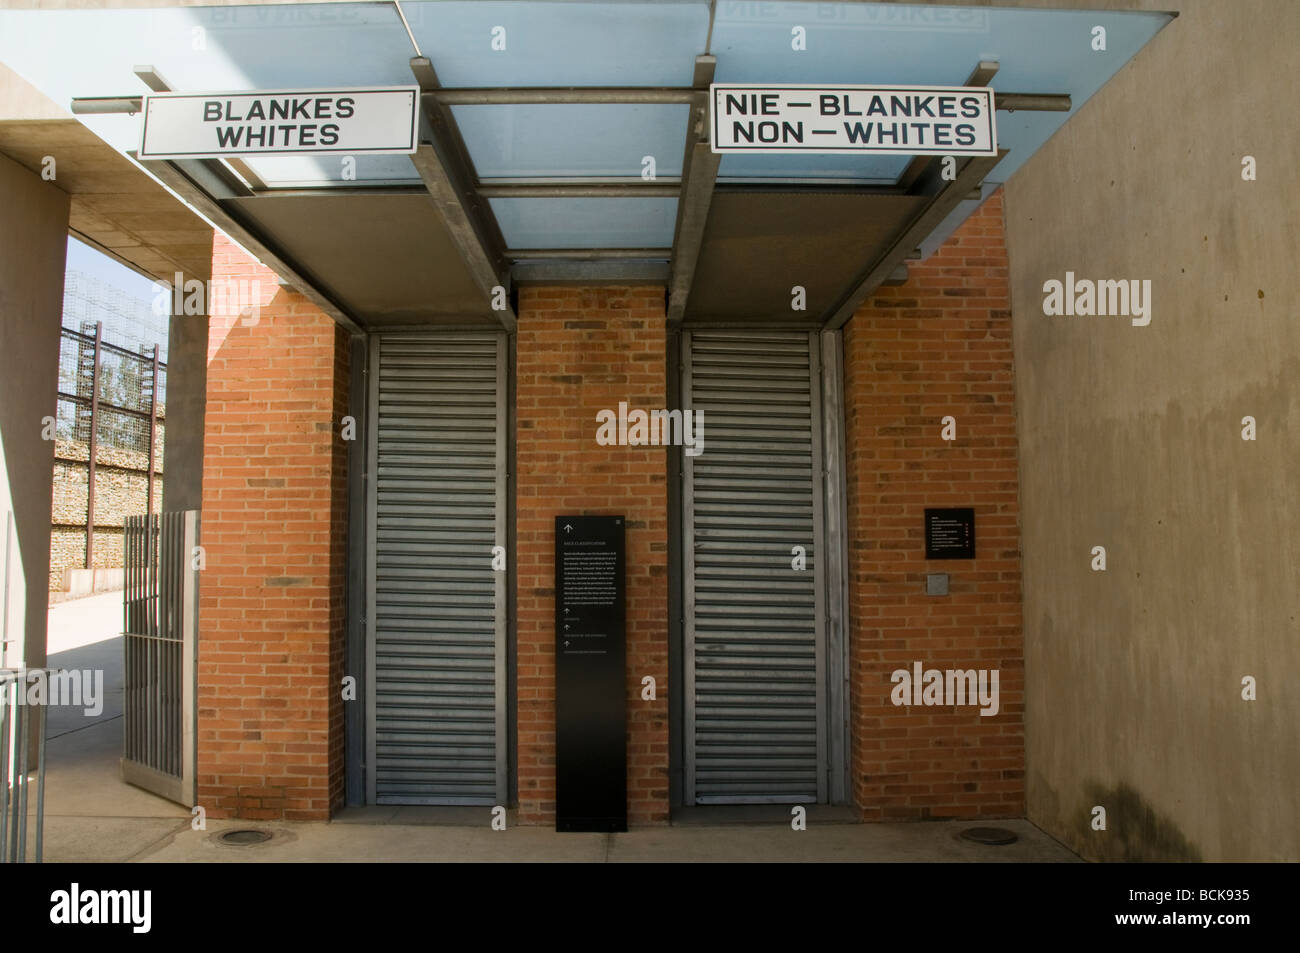 display of how life was at the Apartheid Museum in Johannesburg South Africa - Stock Image